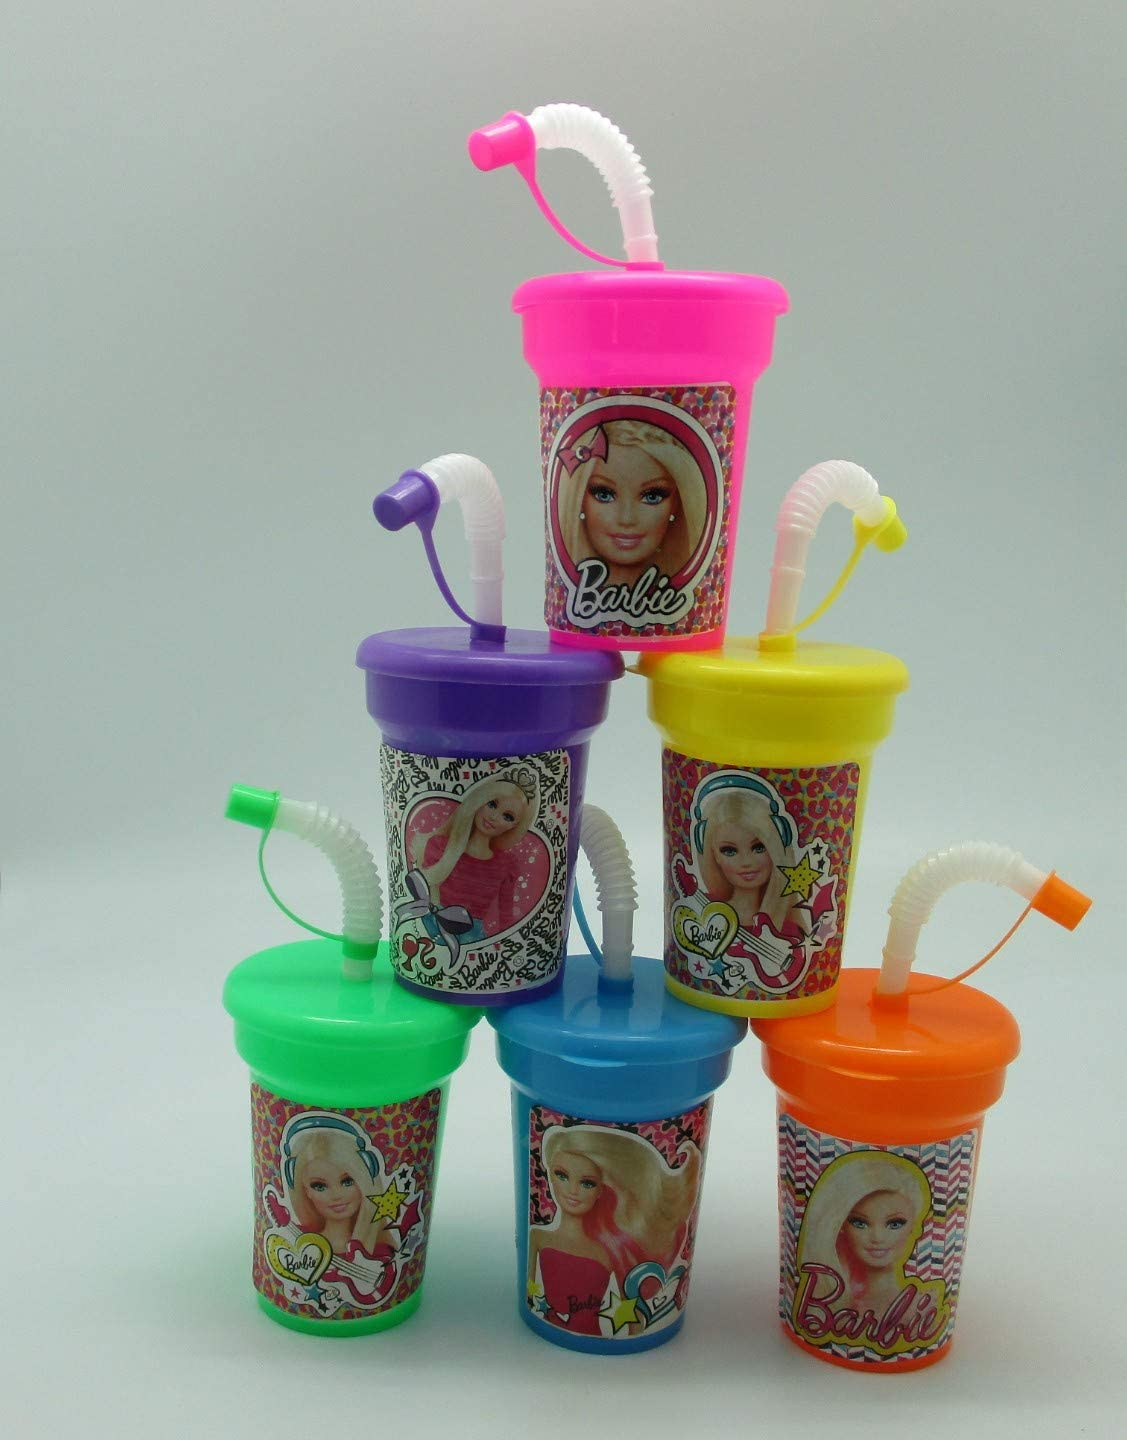 6 Barbies Stickers Birthday Sipper Cups with lids Party Favor Cups